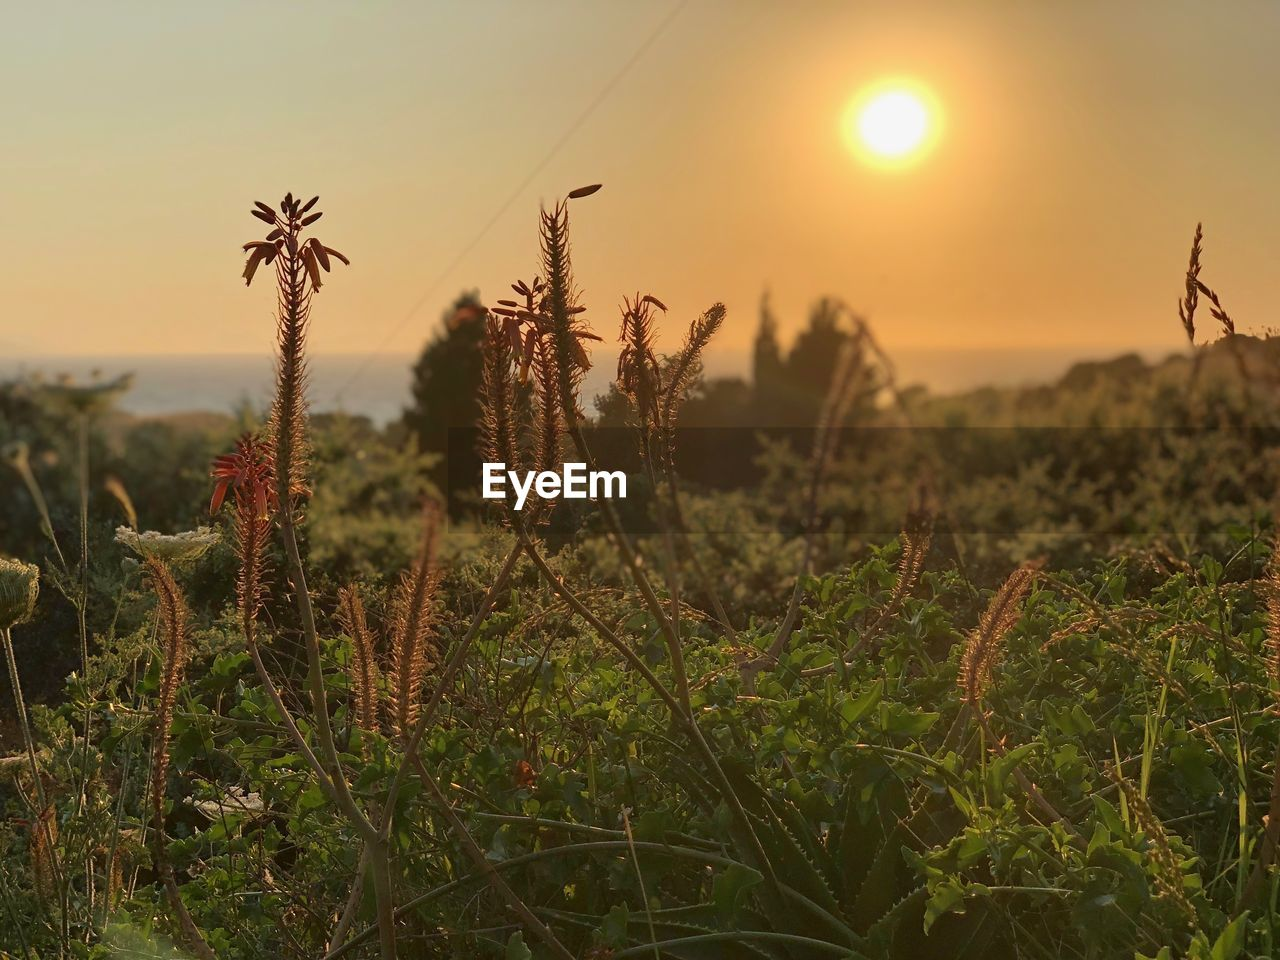 growth, beauty in nature, plant, sky, sunset, tranquility, field, land, nature, scenics - nature, tranquil scene, focus on foreground, sun, no people, landscape, close-up, sunlight, outdoors, rural scene, non-urban scene, stalk